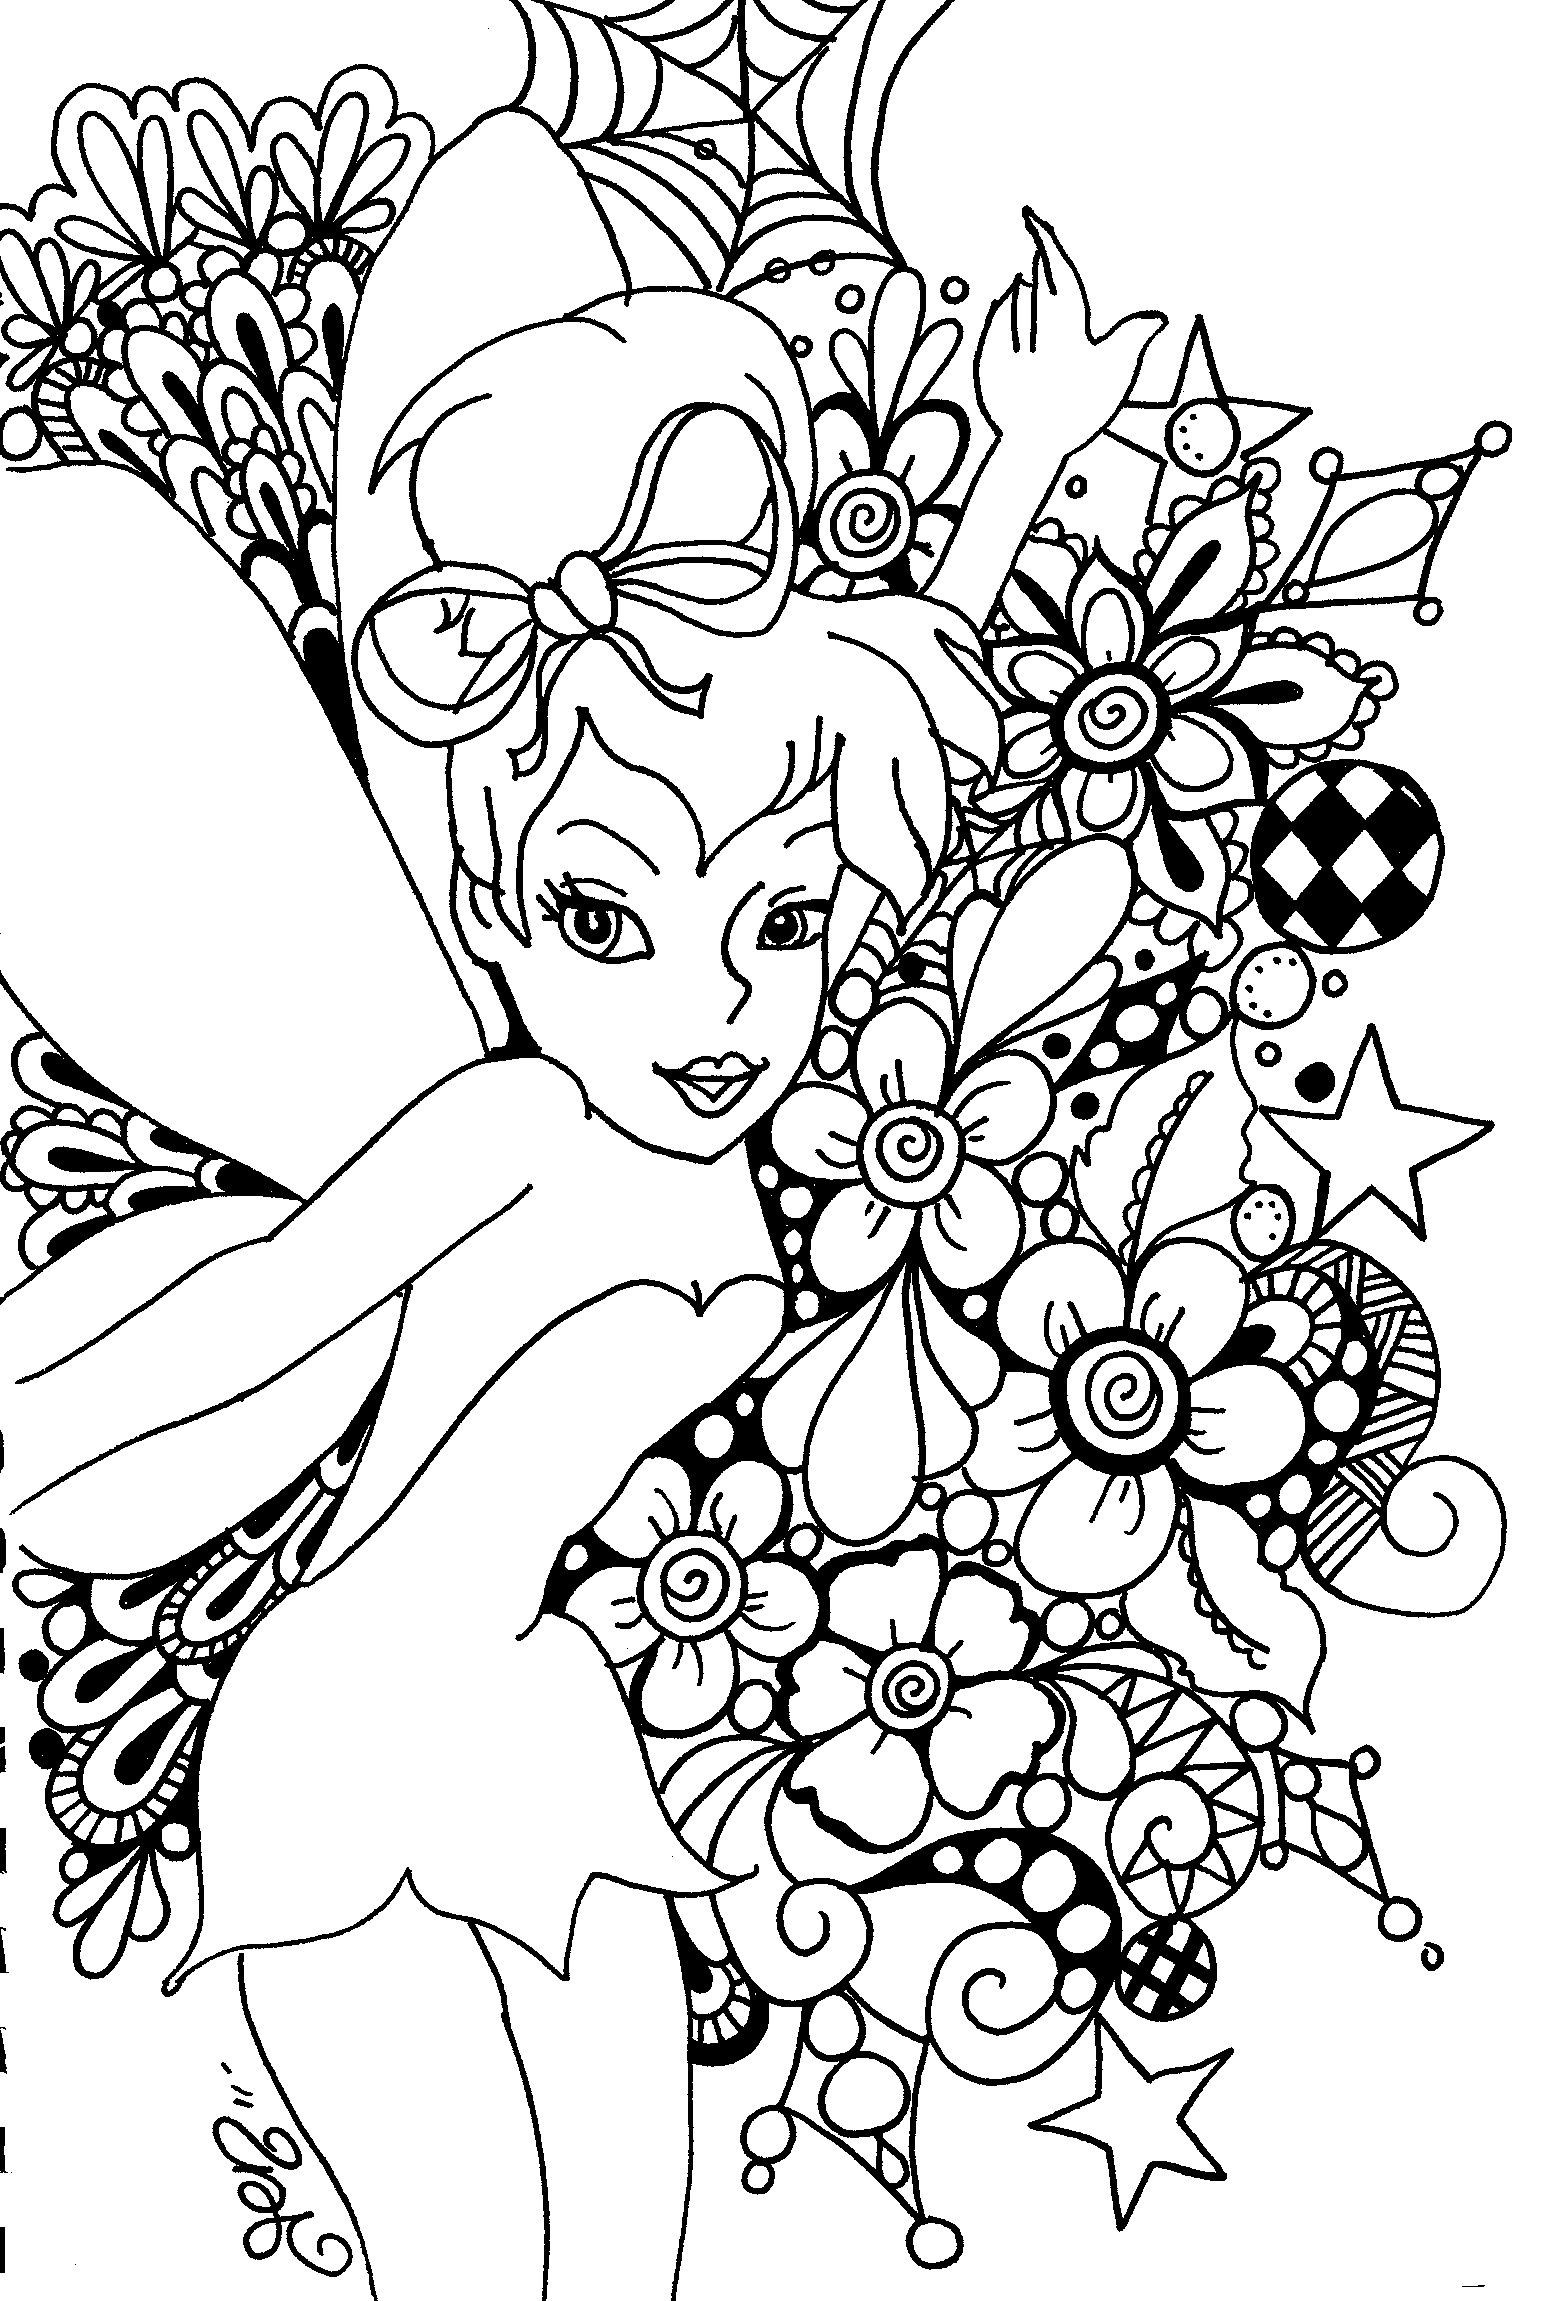 1543x2301 Easily Fairies Coloring Pages Disney Tinker Bell In Childlife Me